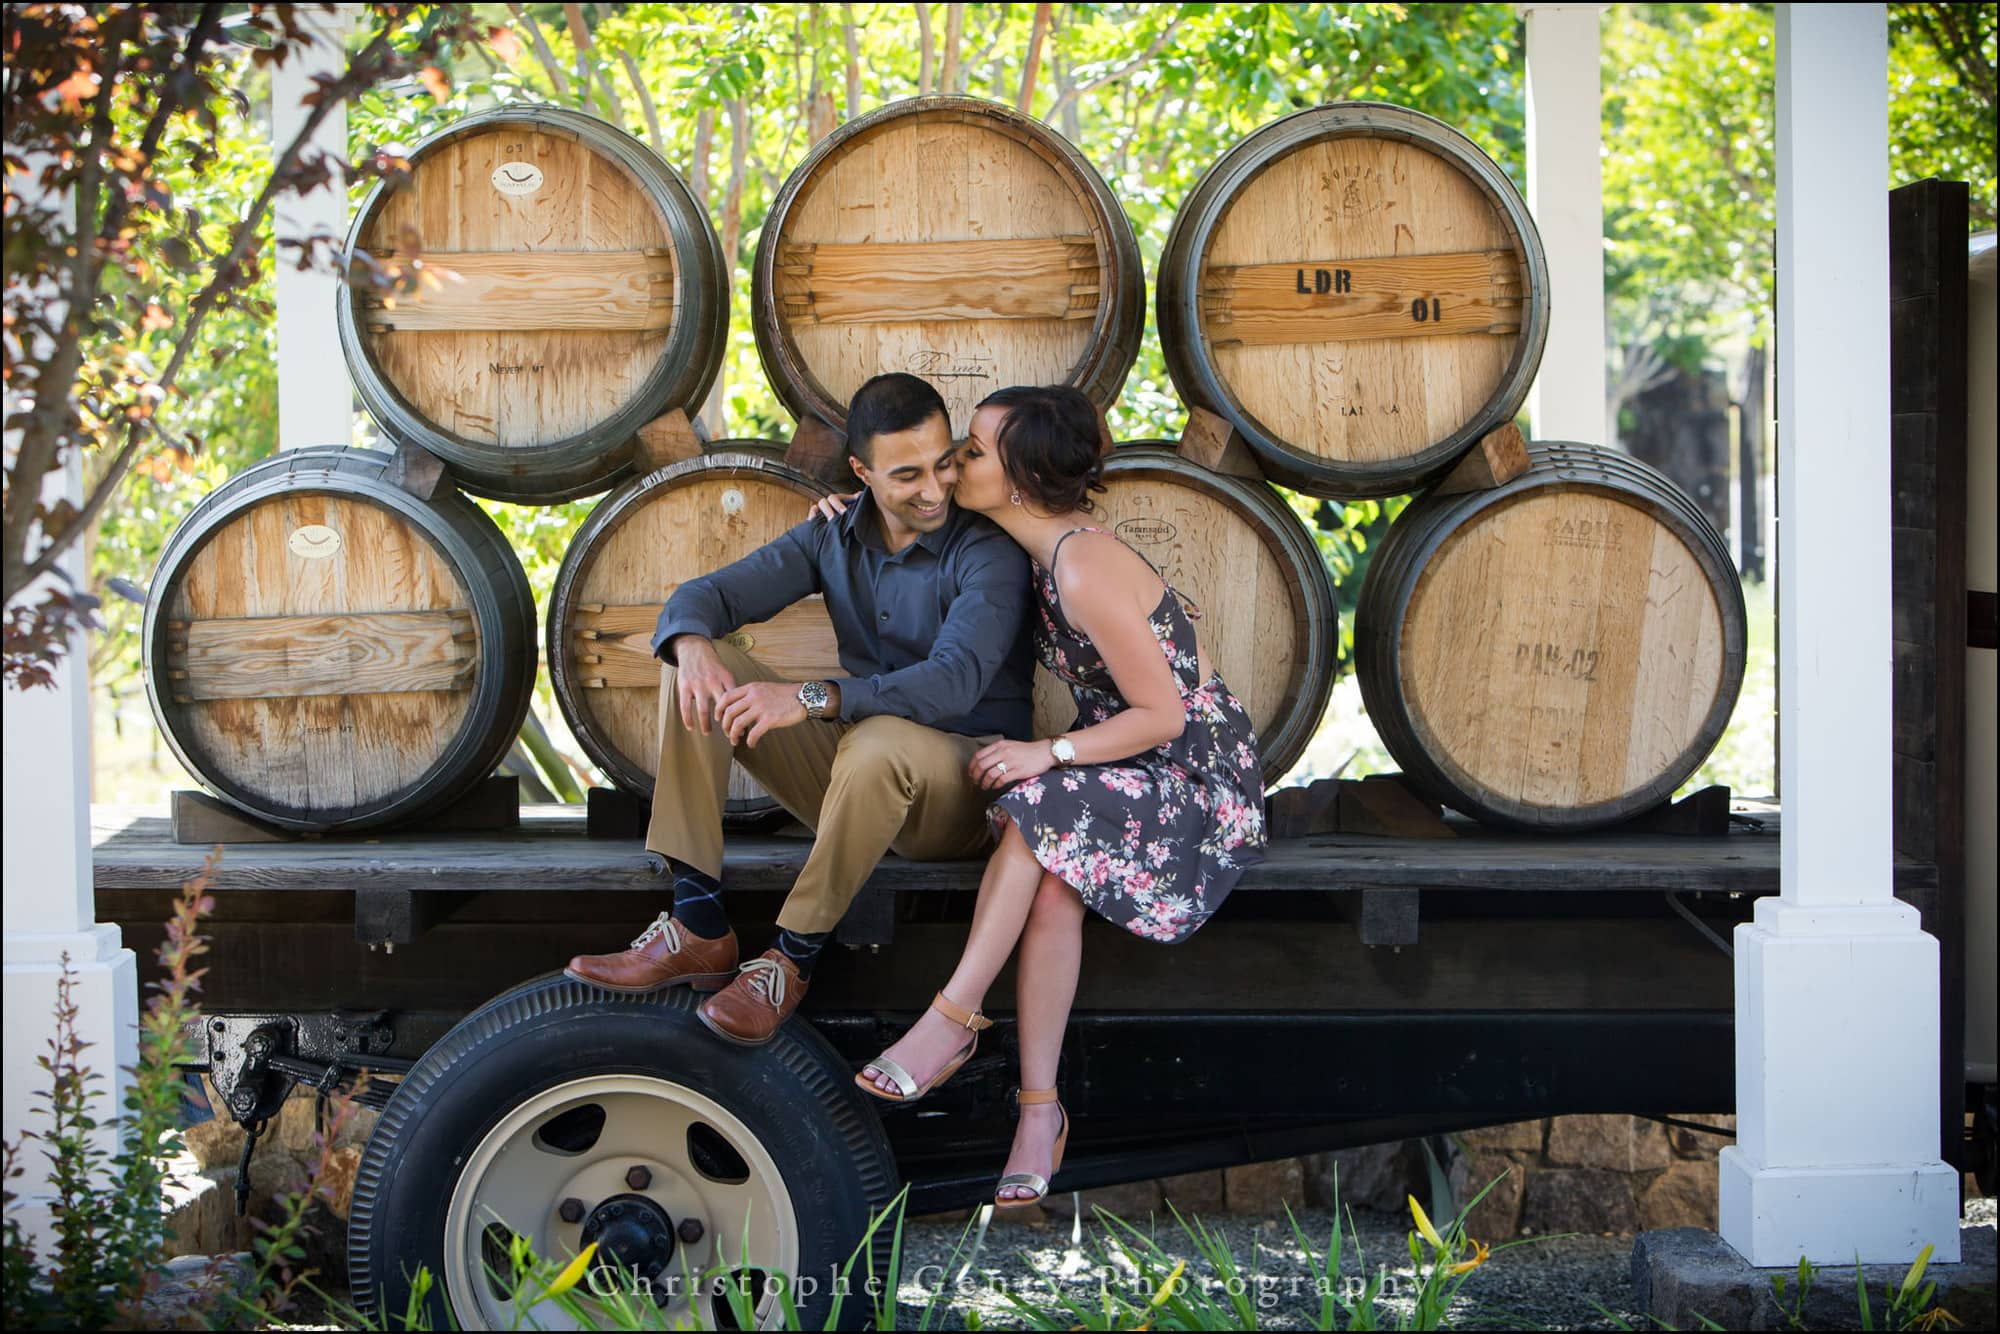 Marriage Proposal Photography at Bremer Winery in The Napa Valley, California